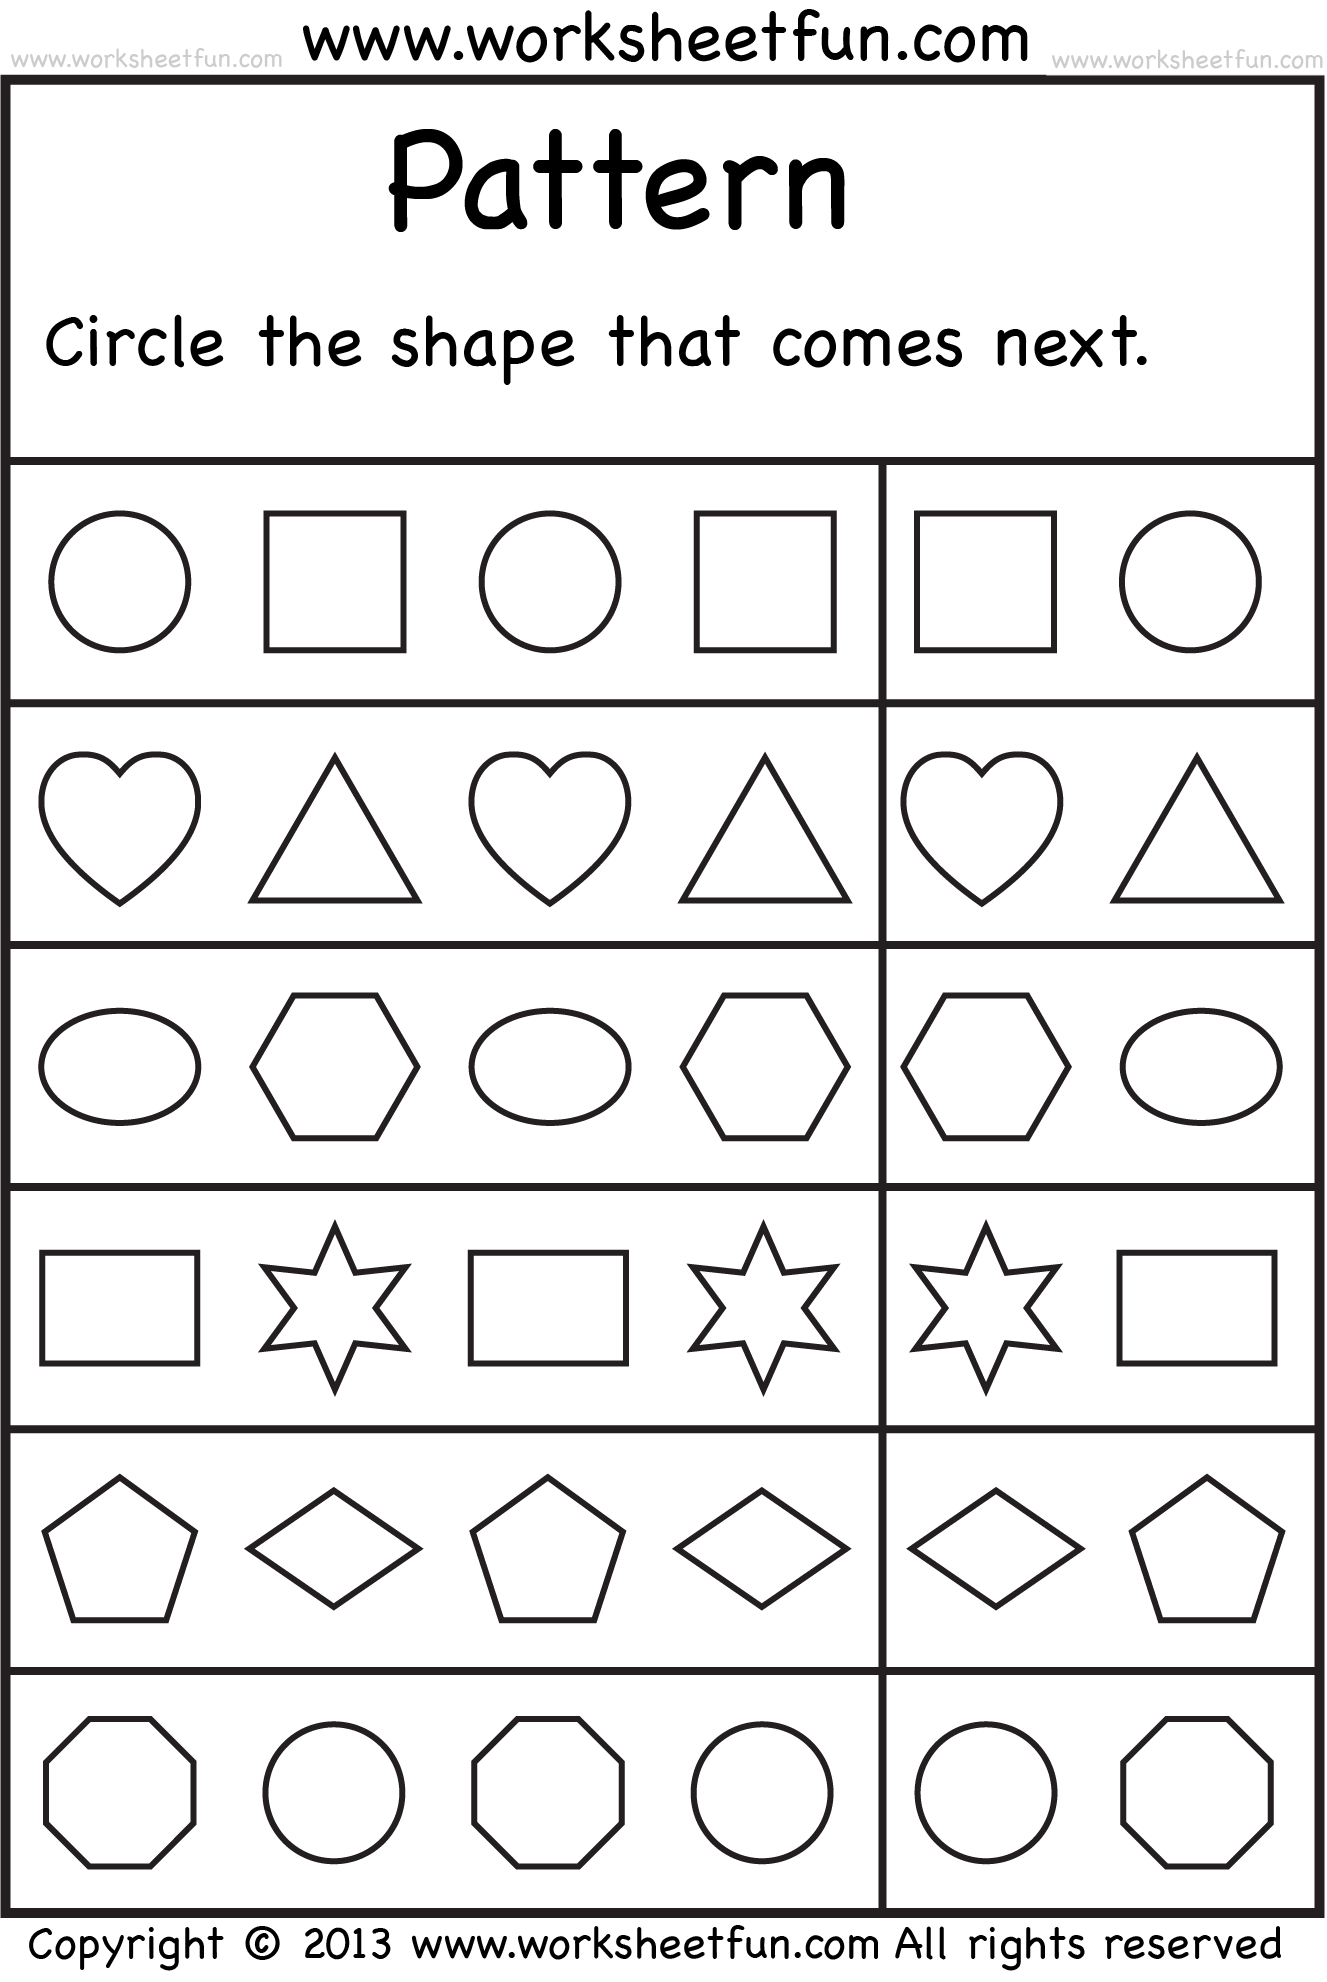 Proatmealus  Marvellous  Images About School Worksheets On Pinterest  Number Words  With Entrancing  Images About School Worksheets On Pinterest  Number Words Alphabet Worksheets And Free Printable Kindergarten Worksheets With Enchanting Half Life Graph Worksheet Also Blank Number Line Worksheet In Addition Ordering Fractions On A Number Line Worksheet And Word Problem Worksheet As Well As Excel Group Worksheets Additionally Rotational Symmetry Worksheet From Pinterestcom With Proatmealus  Entrancing  Images About School Worksheets On Pinterest  Number Words  With Enchanting  Images About School Worksheets On Pinterest  Number Words Alphabet Worksheets And Free Printable Kindergarten Worksheets And Marvellous Half Life Graph Worksheet Also Blank Number Line Worksheet In Addition Ordering Fractions On A Number Line Worksheet From Pinterestcom